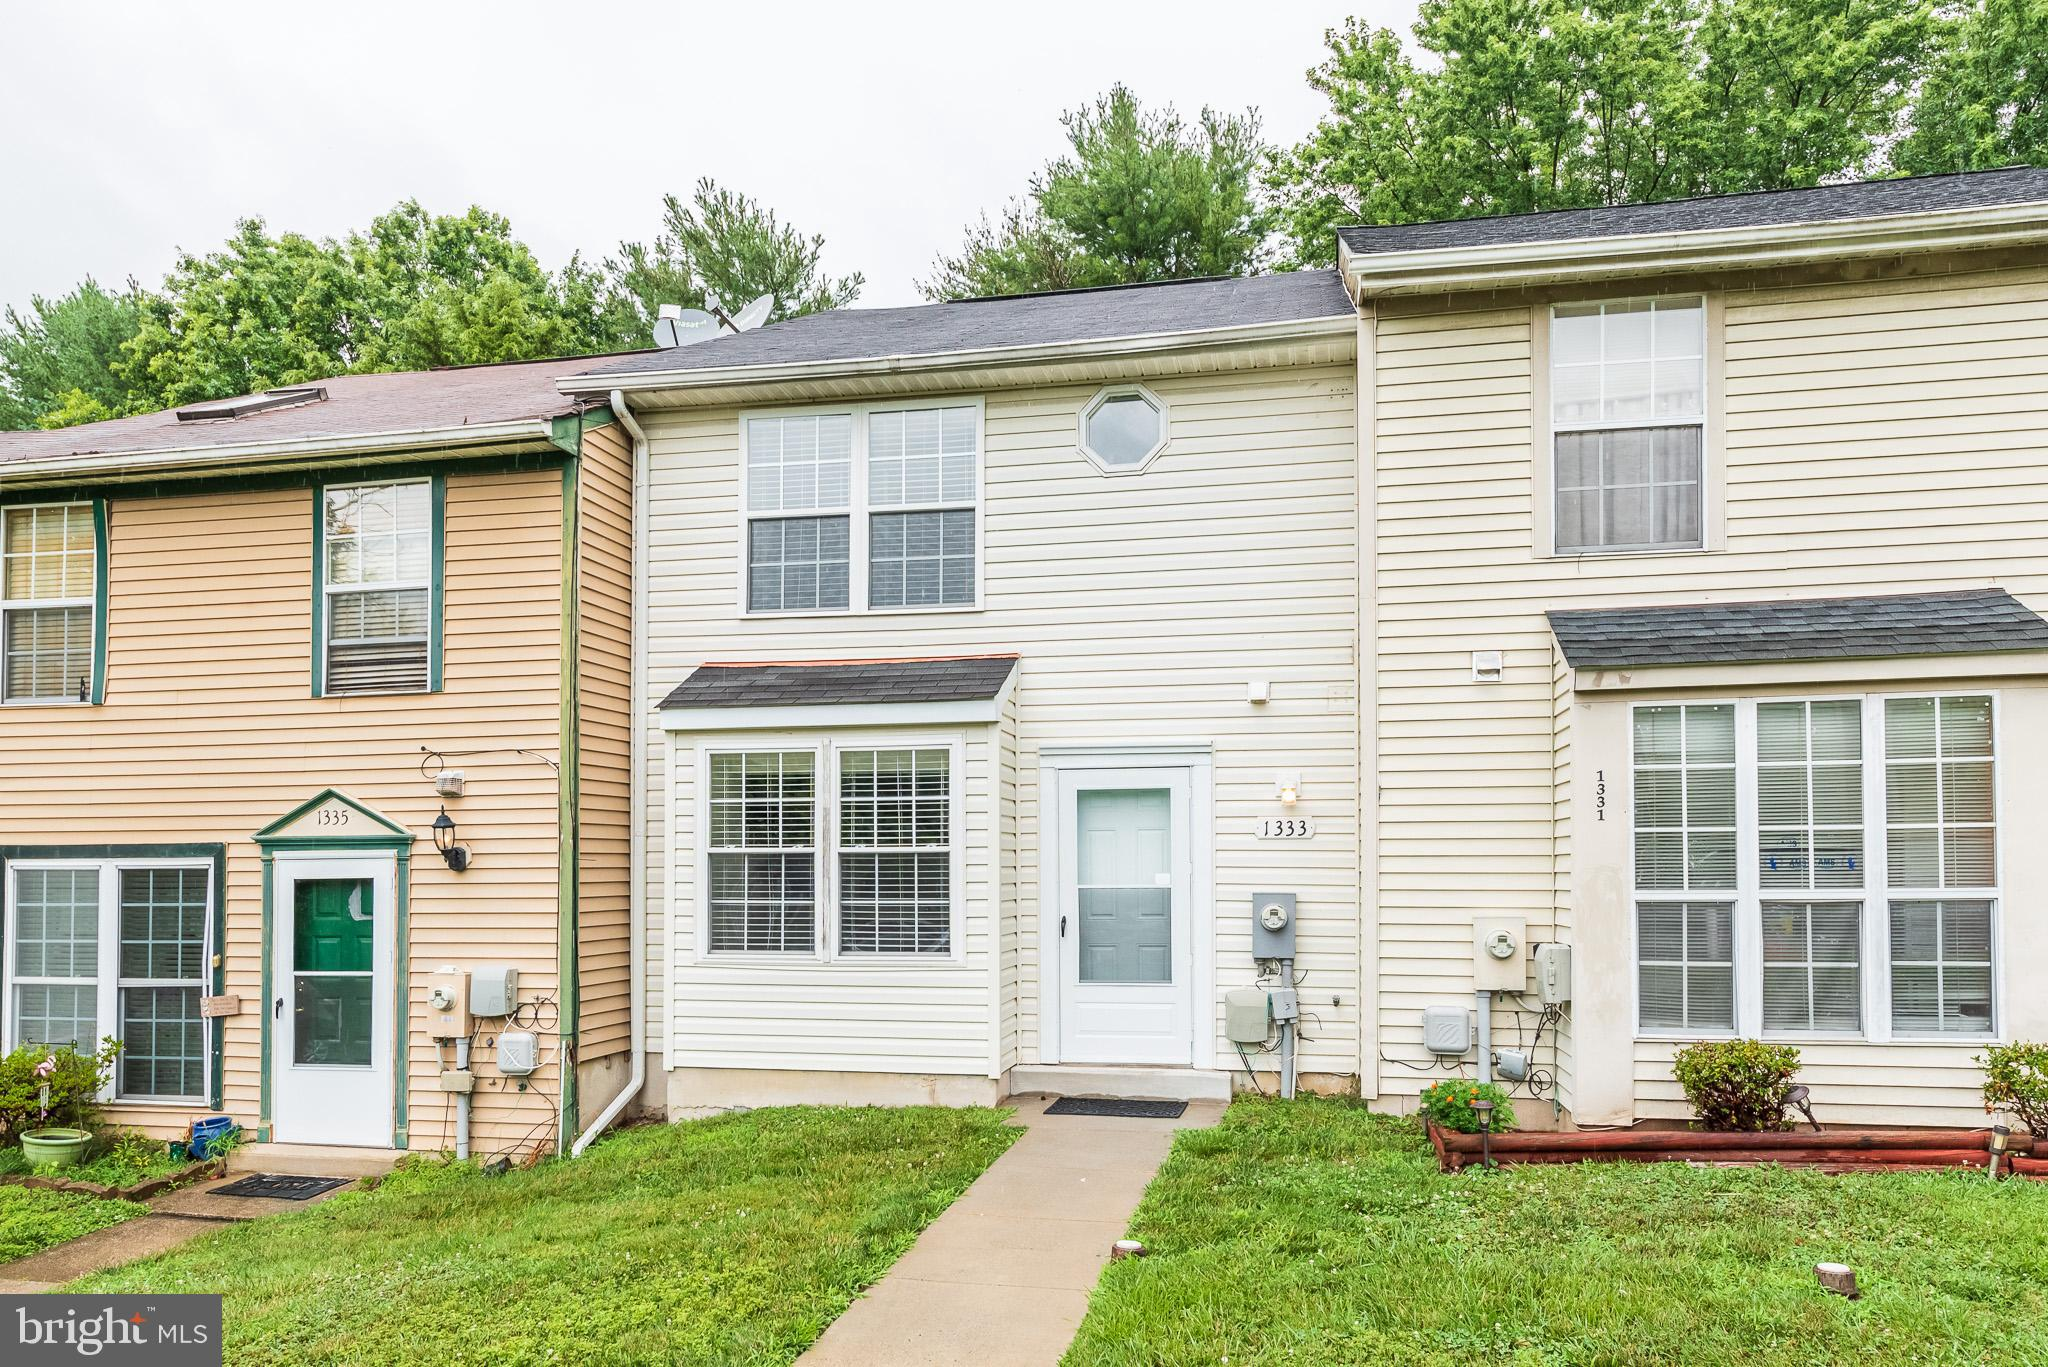 WELL MAINTAINED 3 BEDROOM, 1.5 BATH TOWNHOME!  SPACIOUS LIVING ROOM/ DINING ROOM COMBO--UPDATED KITC